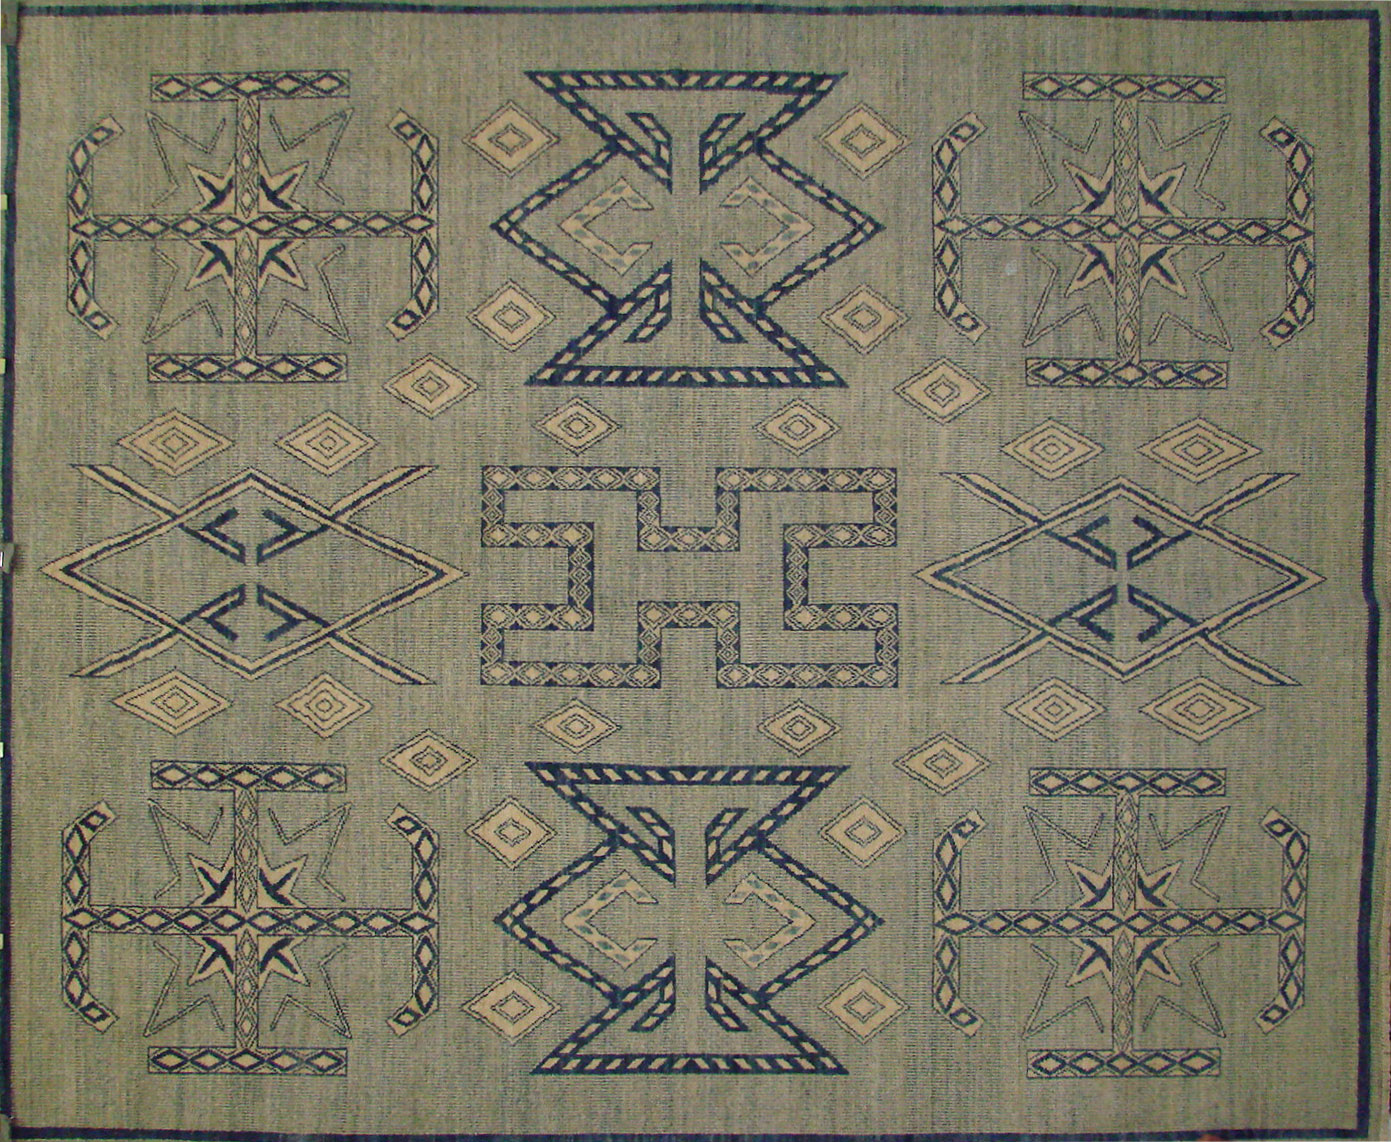 8x10 Contemporary Hand Knotted Wool Area Rug - MR021698